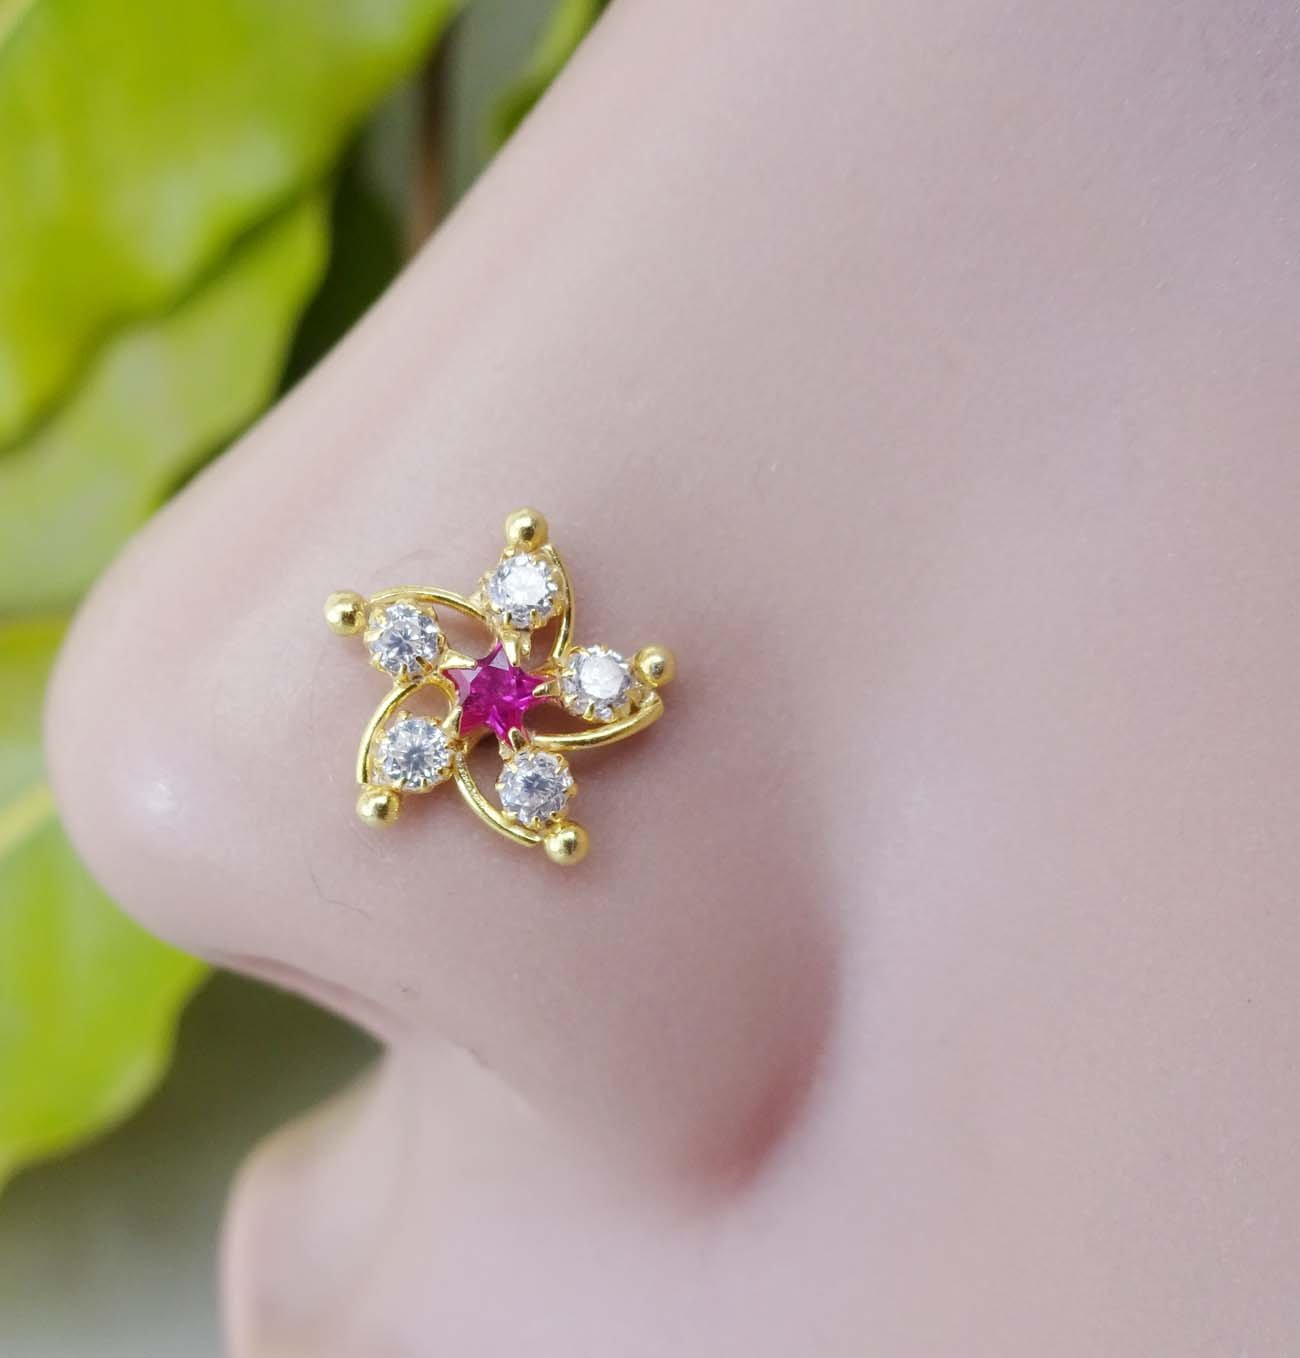 Ruby Star Crystal Gold Nose Stud, White Gold Nose Stud, 18g Gold Nose Piercing, 20 Gauge Nose Screw, Crock Screw Nose Piercing, 925 Sterling Silver Nose Piercing, Indian Nose Stud, Gold Nose Bone, Cubic Zirconia Nose Stud, Mandala Nose Piercing, Unique Nos